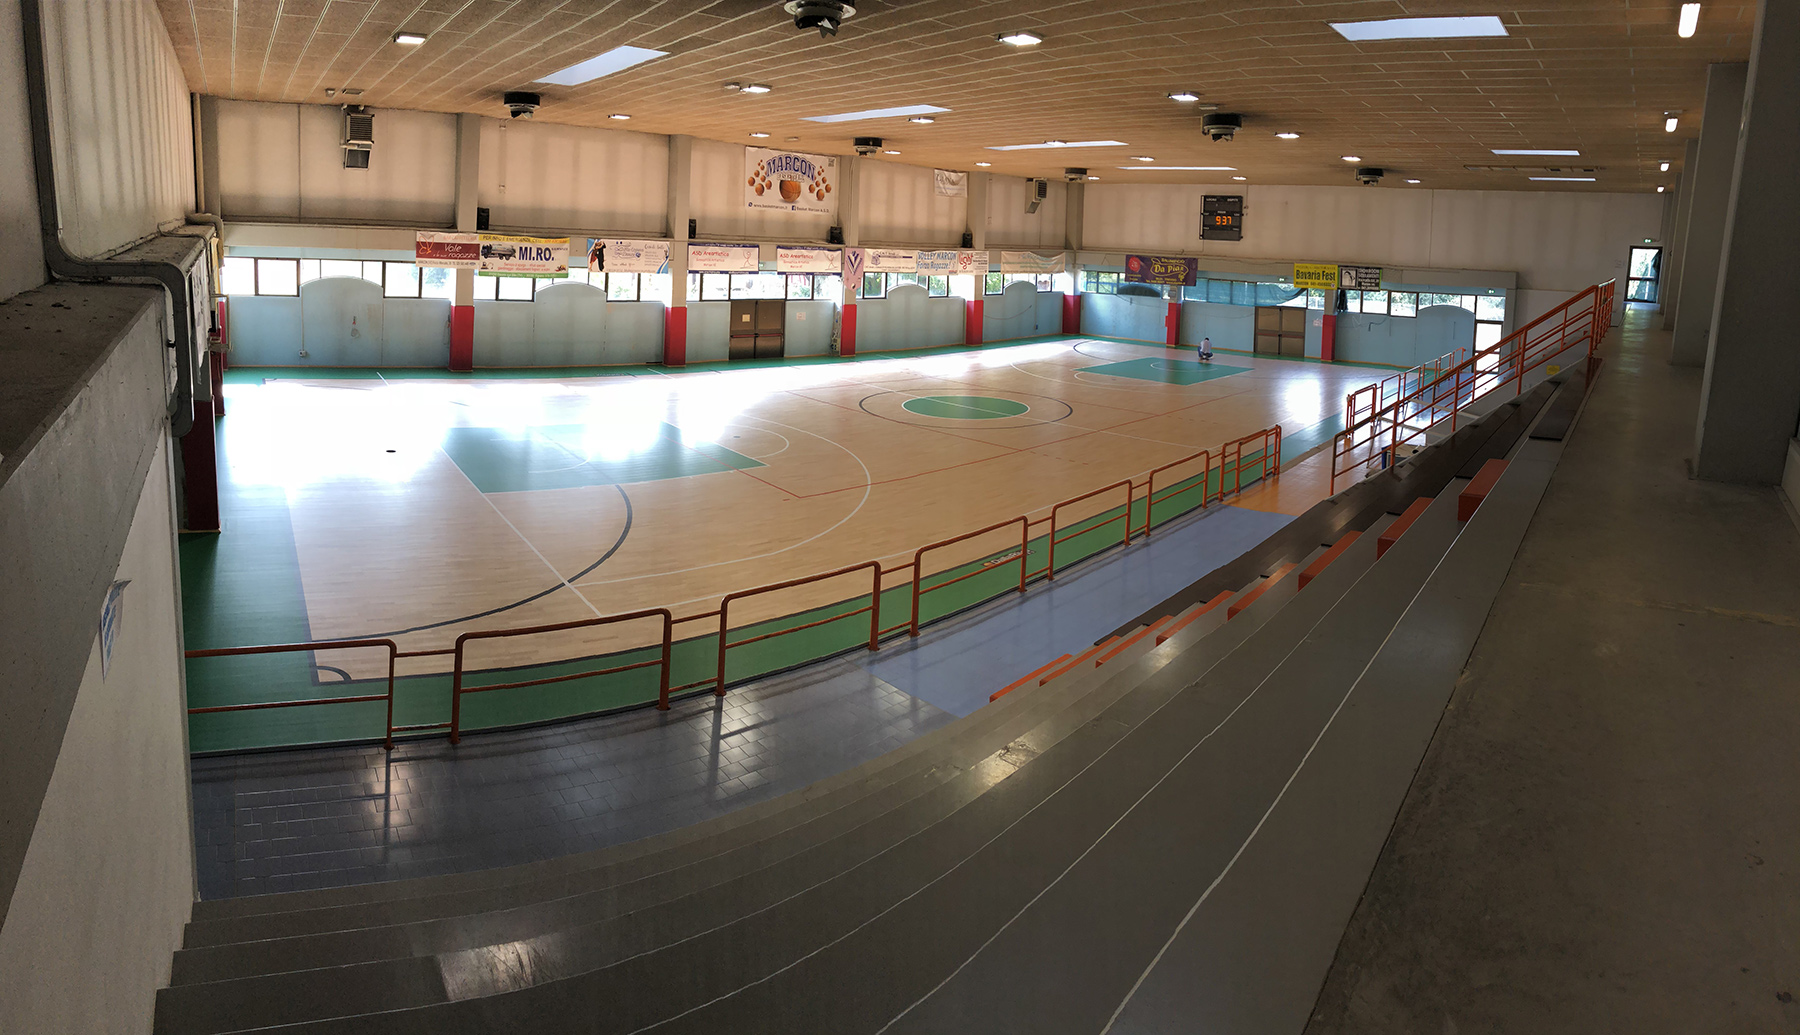 1000 square meters of surface also suitable for basketball and volleyball